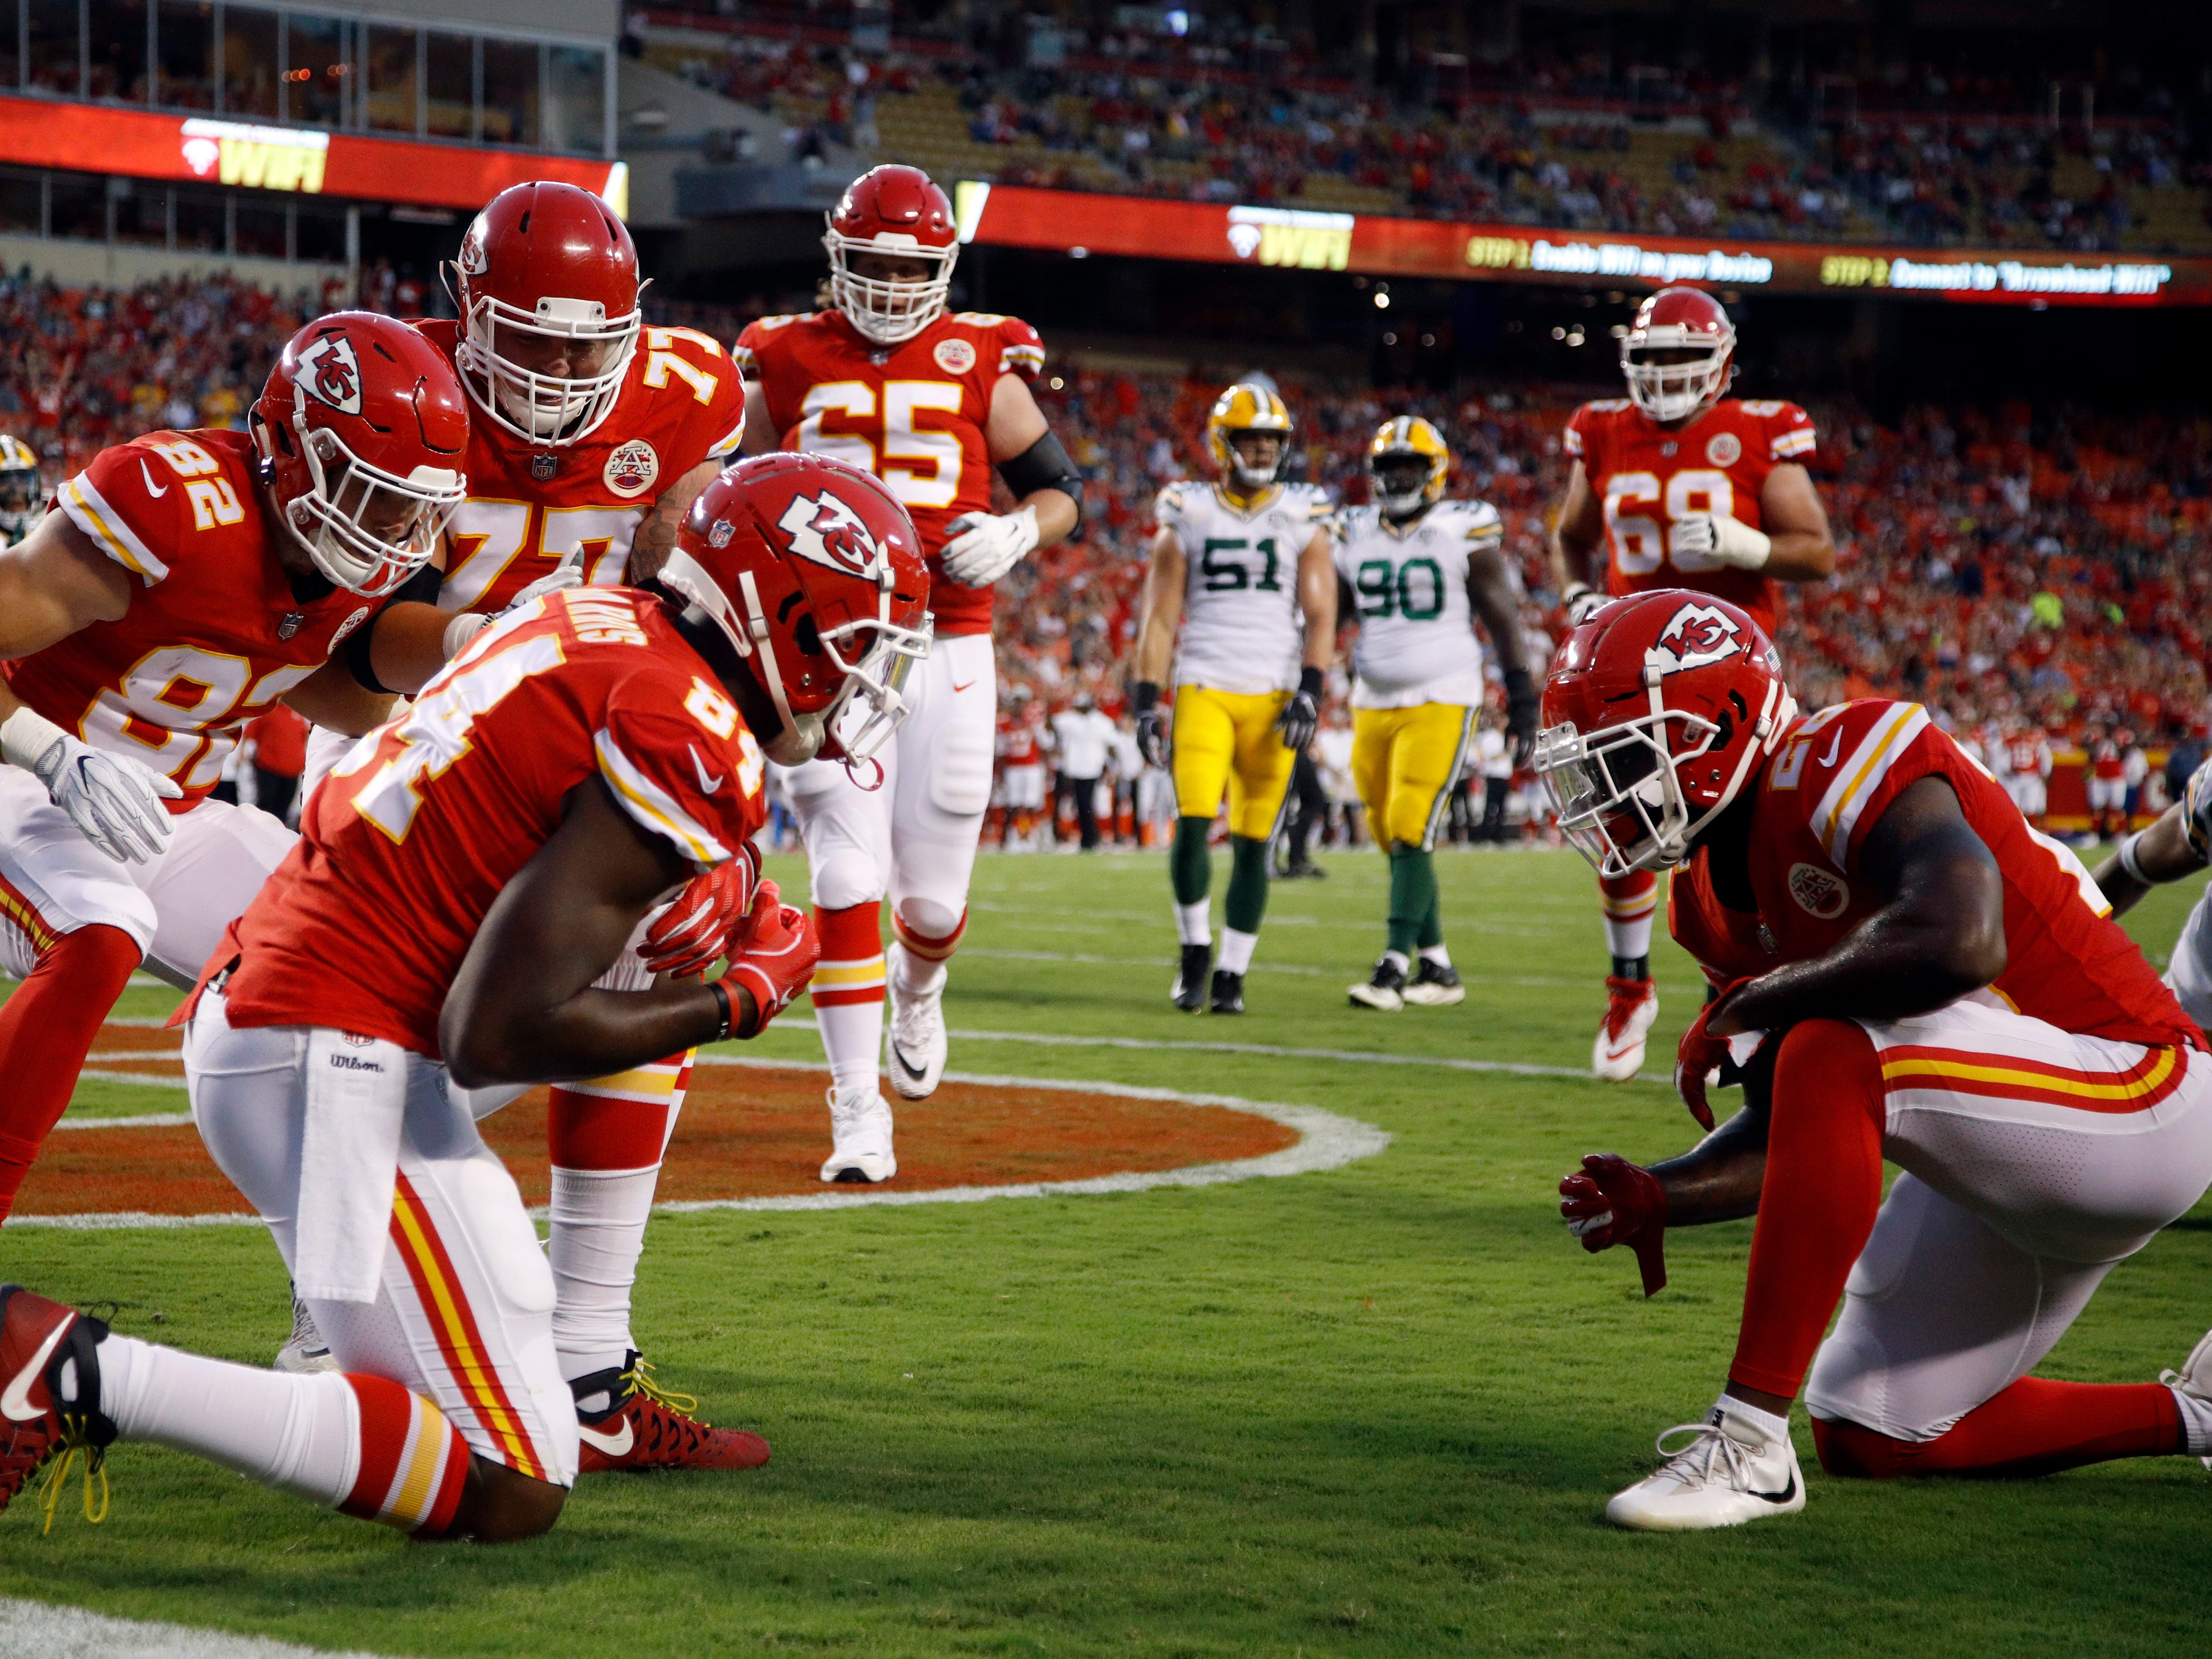 Kansas City Chiefs tight end Demetrius Harris (84) celebrates his touchdown with teammates during the first half of an NFL preseason football game against the Green Bay Packers in Kansas City, Mo., Thursday, Aug. 30, 2018.